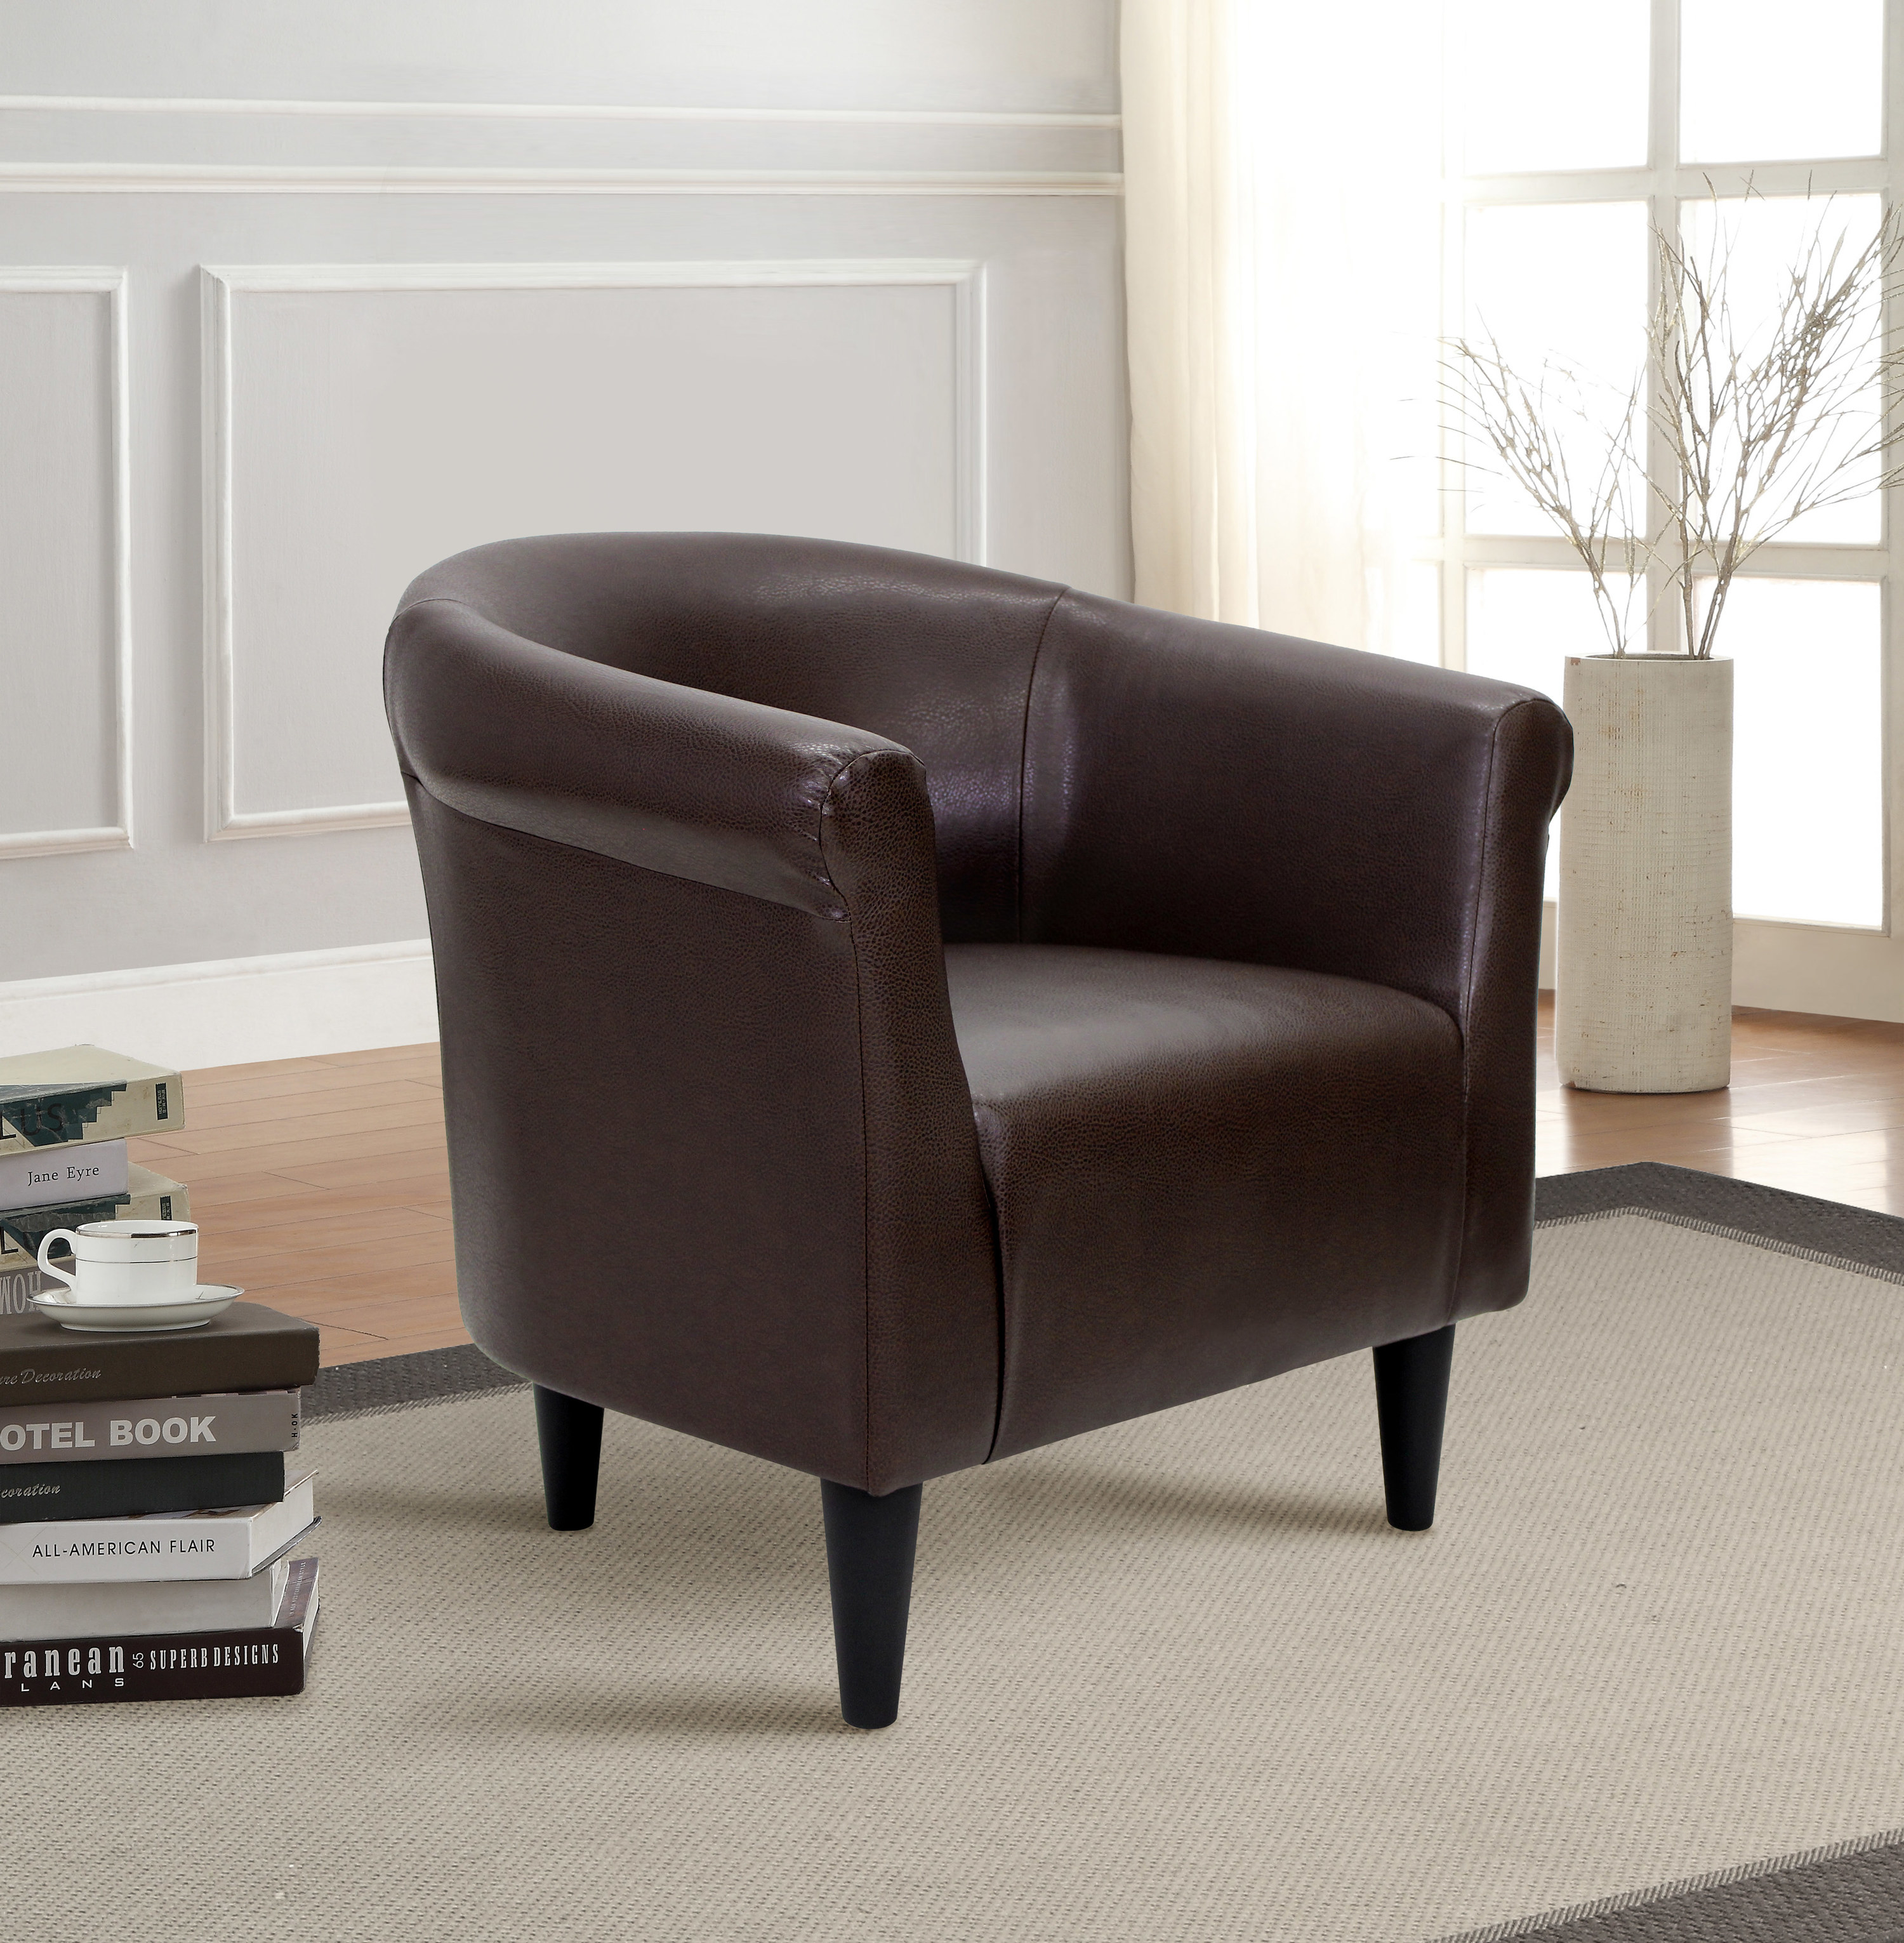 The brown leather chair